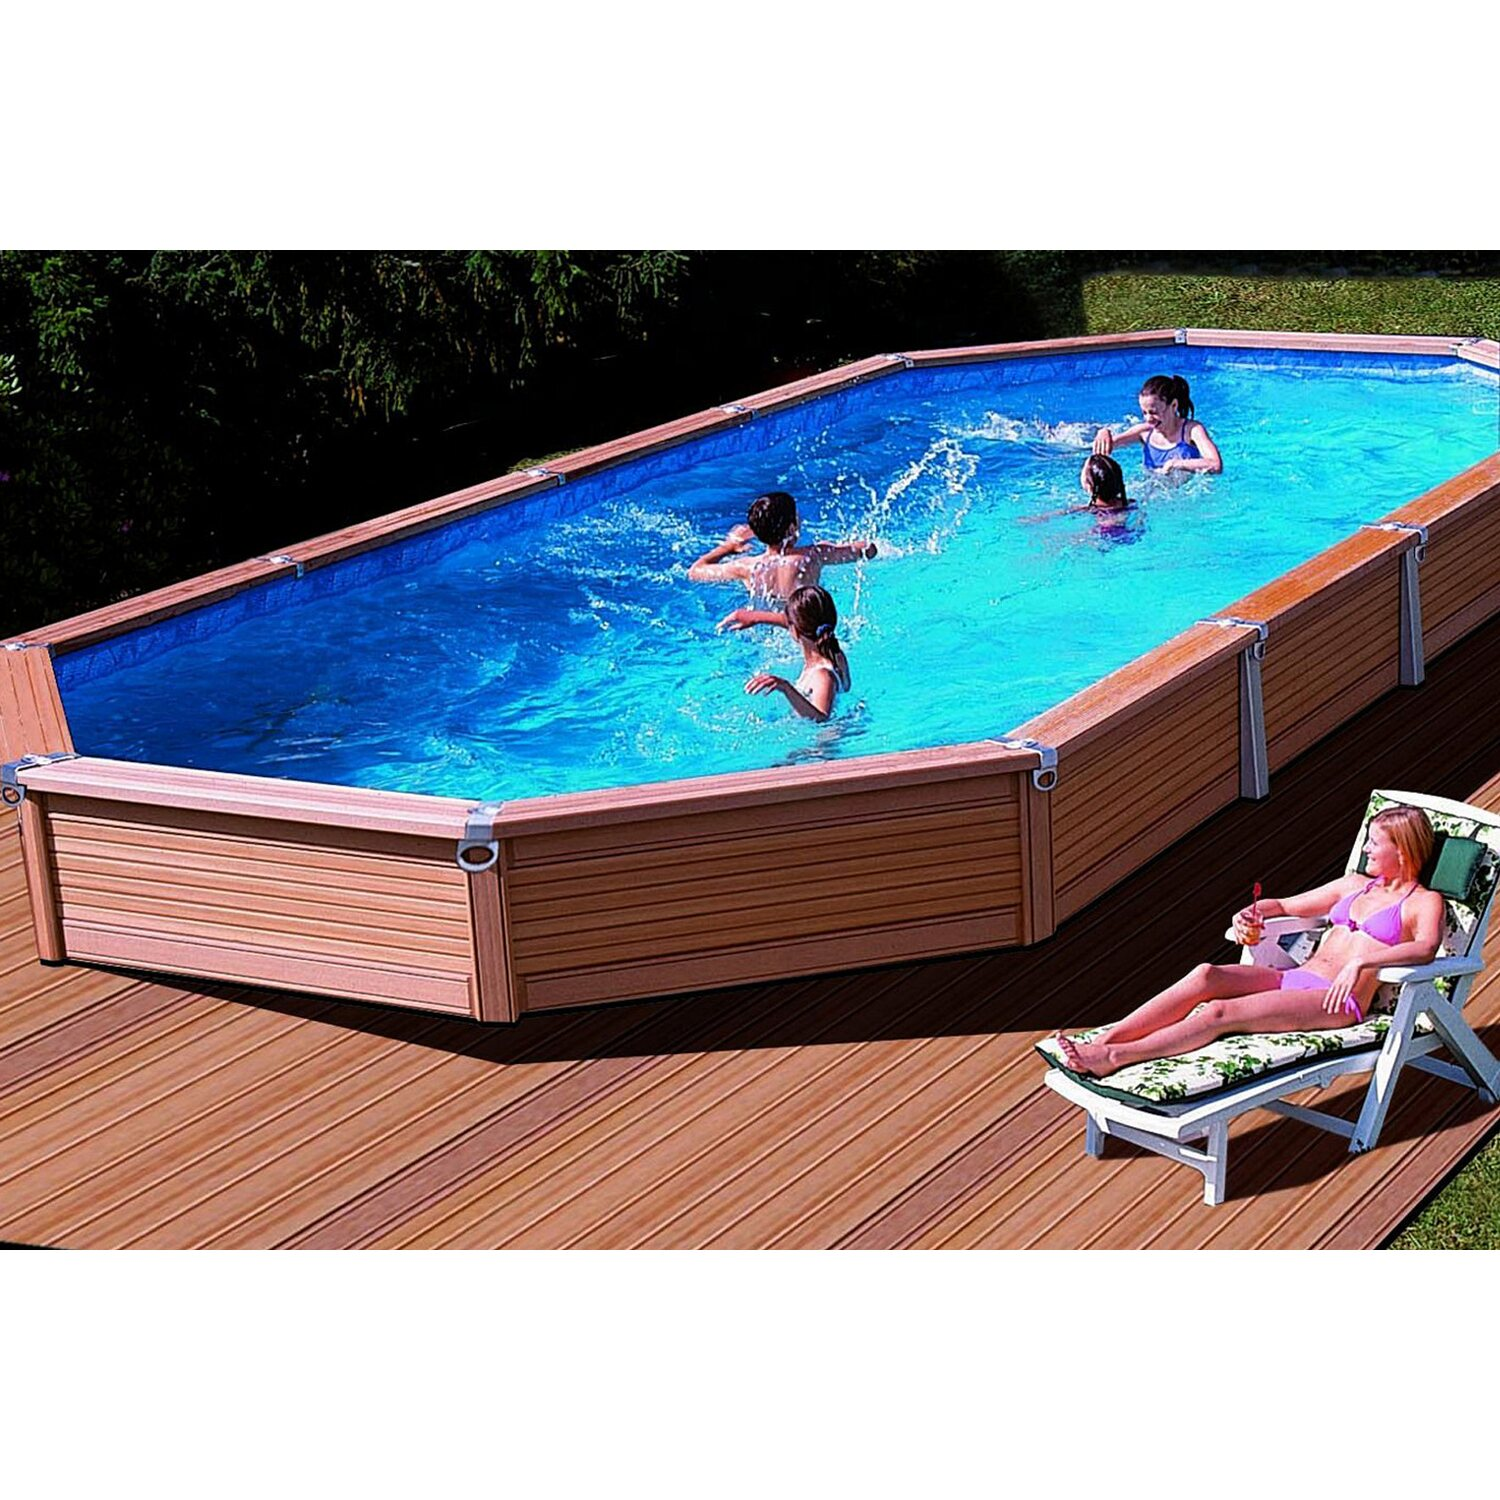 summer fun pool set azteck rechteckbecken zum einbau 690 cm x 365 cm x 140 cm kaufen bei obi. Black Bedroom Furniture Sets. Home Design Ideas